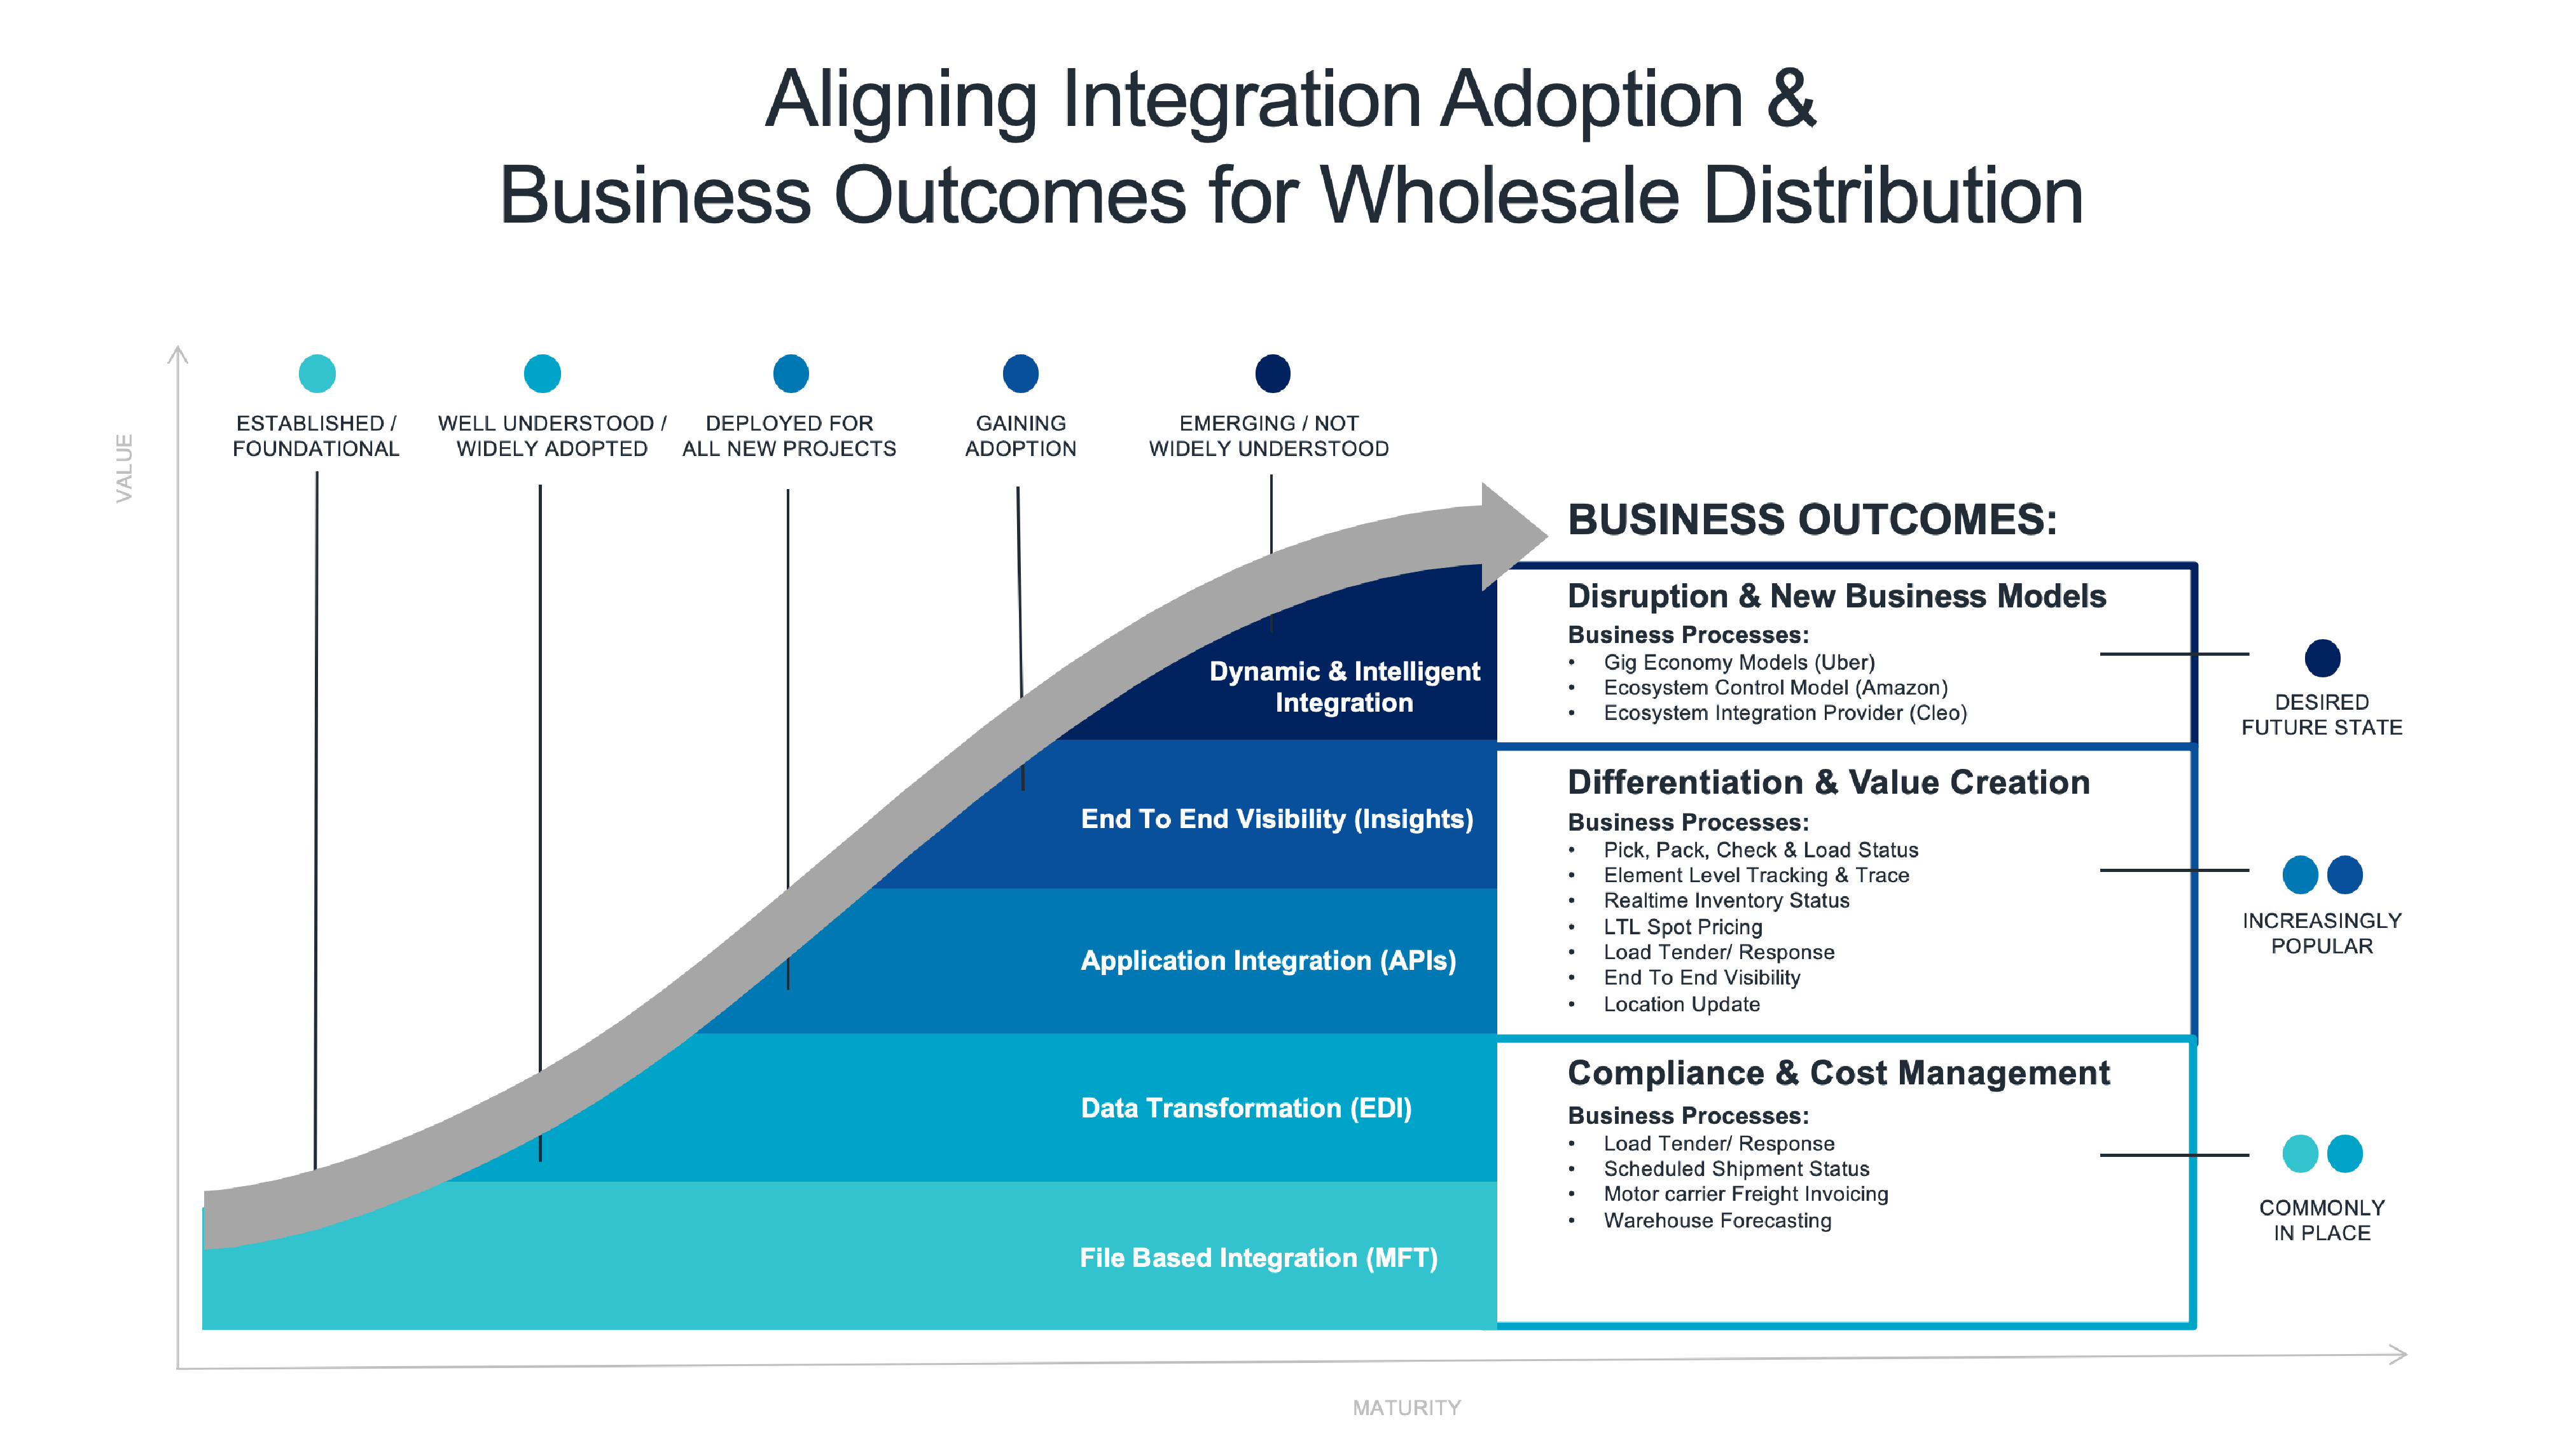 Five Stage Maturity Model for Wholesale Distributors